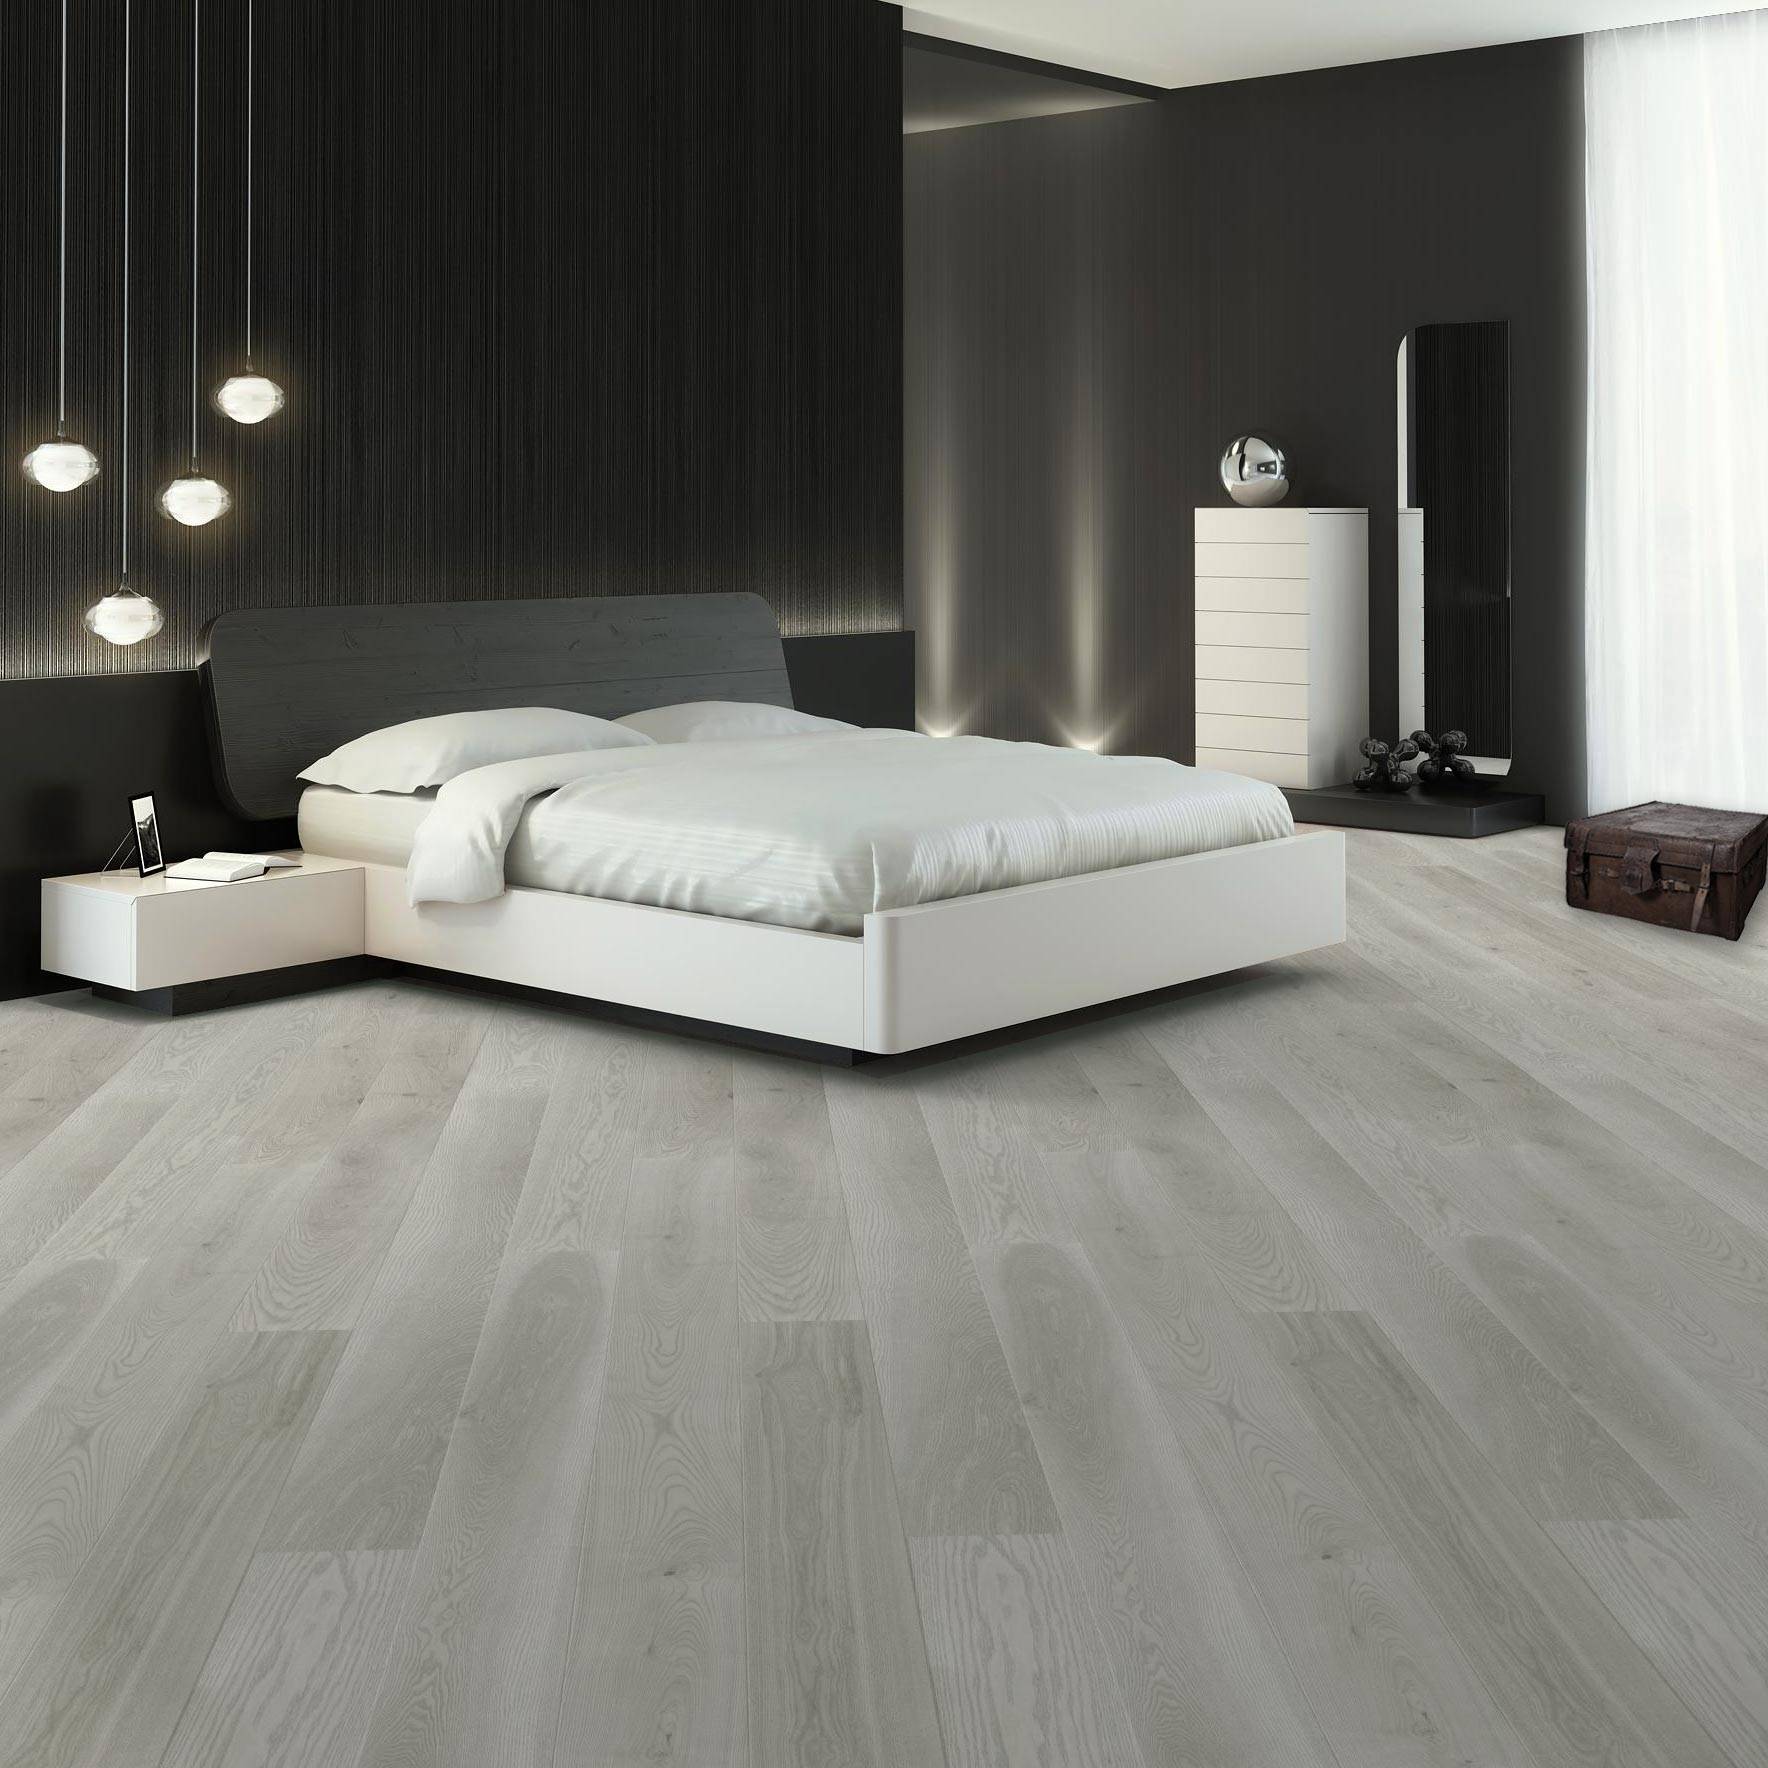 Abbey Ruthin 14mm Grey Oak Matt Lacquered Click Engineered